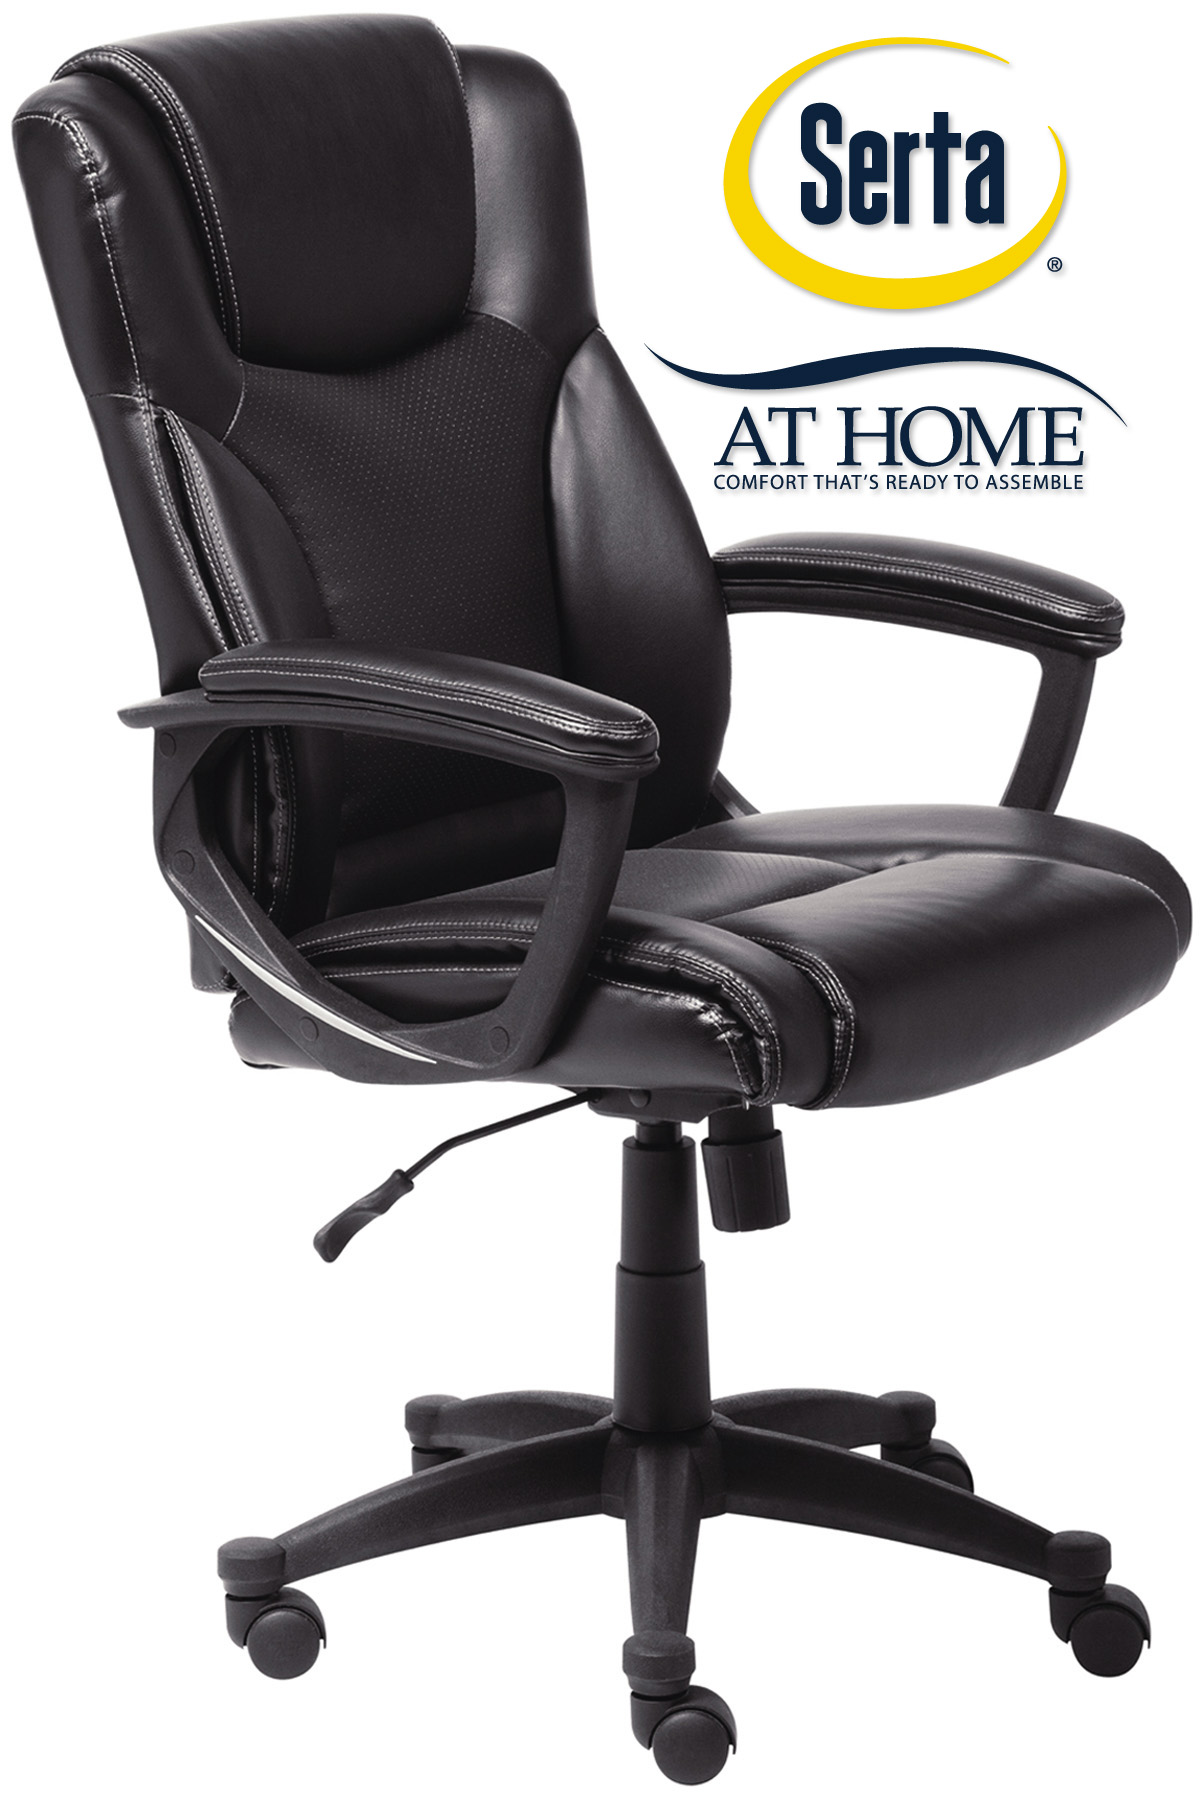 menards office chairs chair attached to table upc 840391205642 serta black supple bonded leather